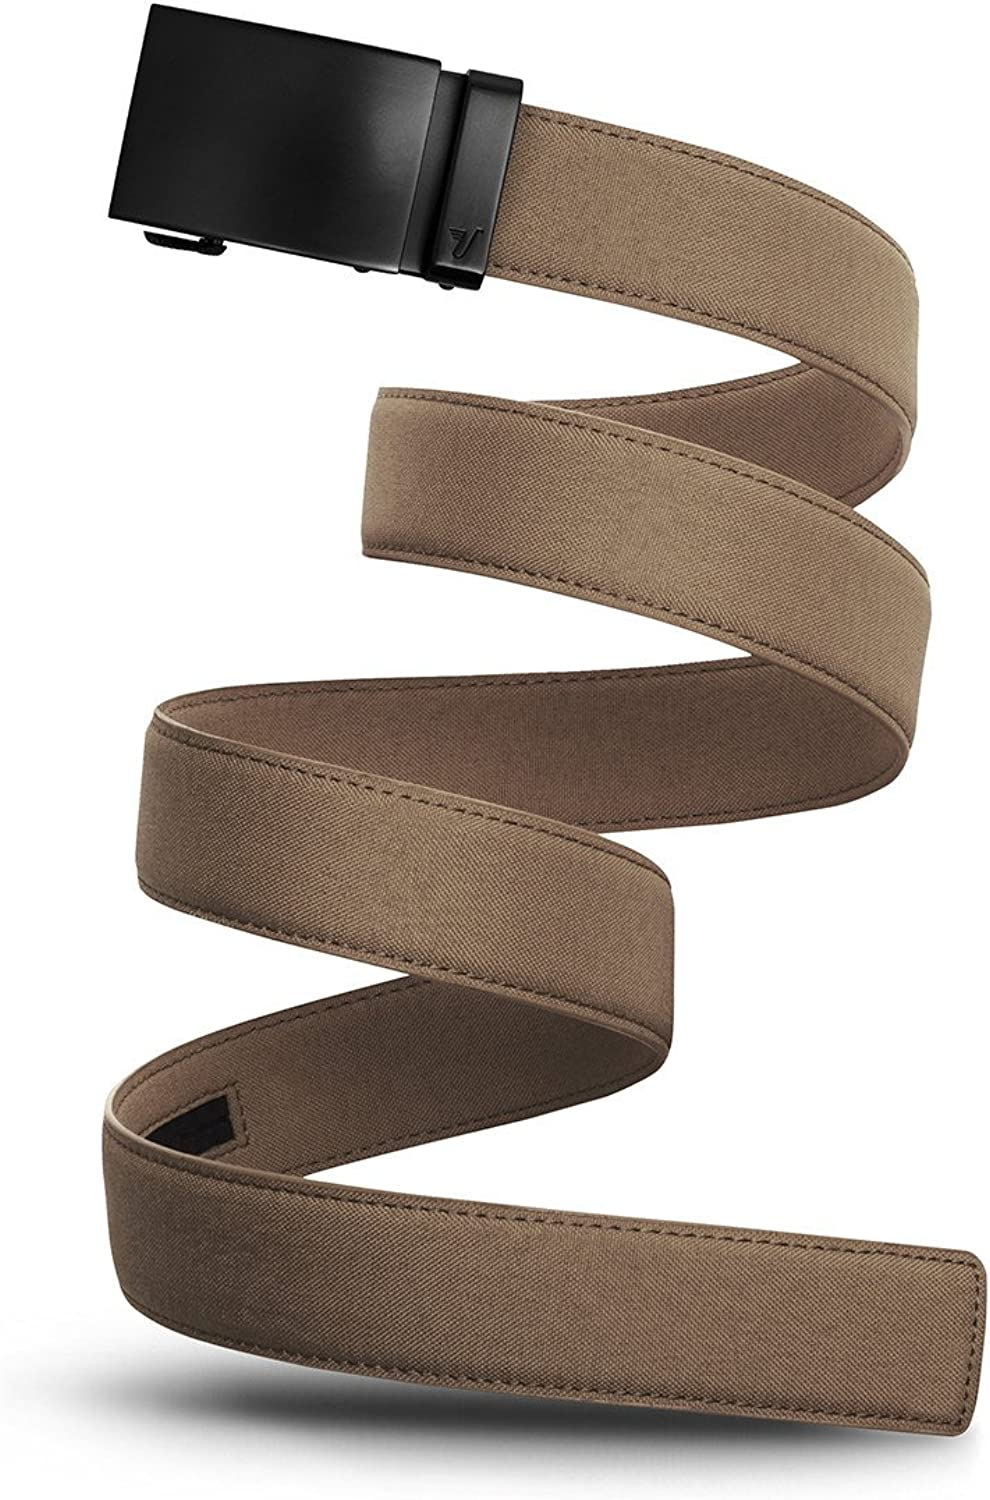 Mission Belt Men's Canvas Ratchet Belt, 40mm Canvas Collection